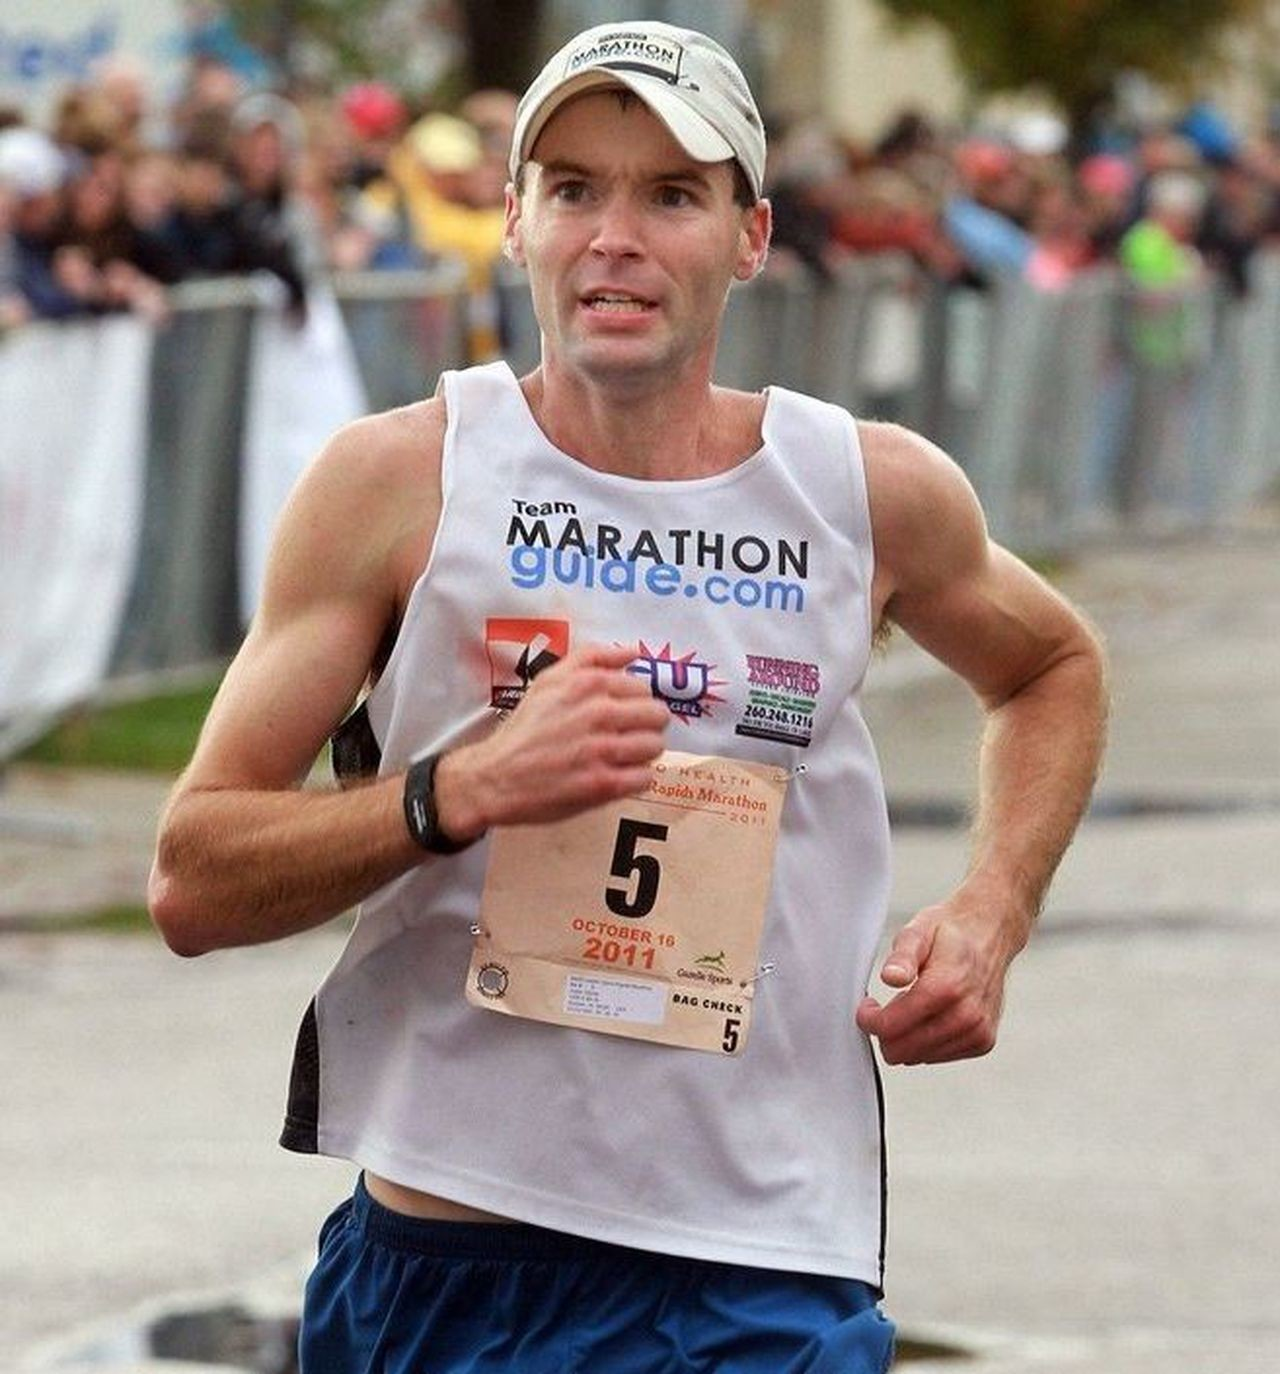 Justin Gillette has won more marathons than most people have entered, and he's hoping to win many more